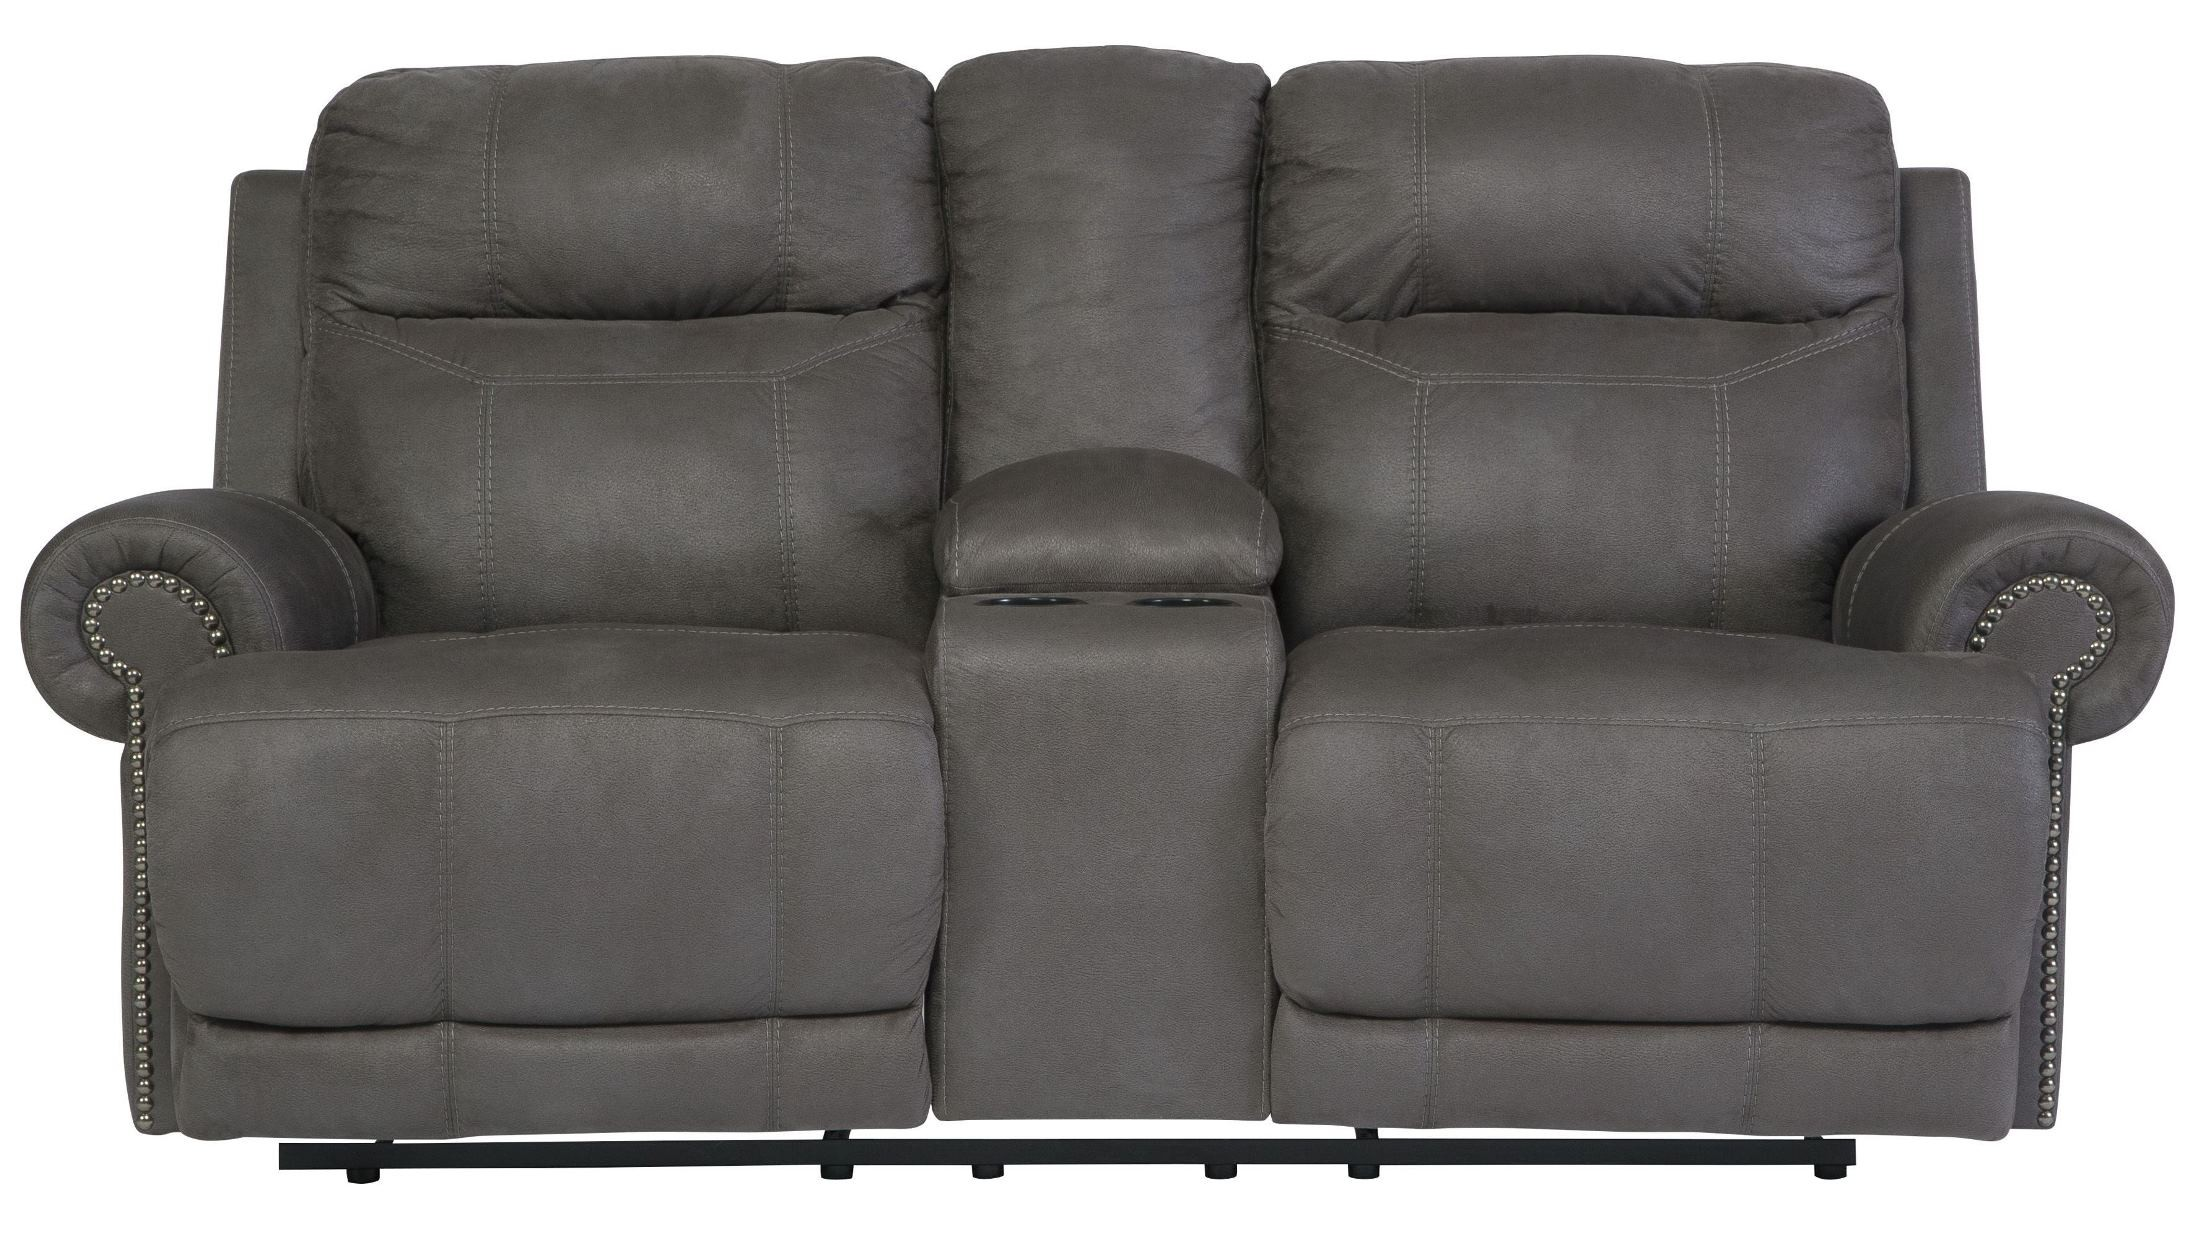 grey power reclining sofa 2 seater bed and matching chair austere gray double loveseat with console